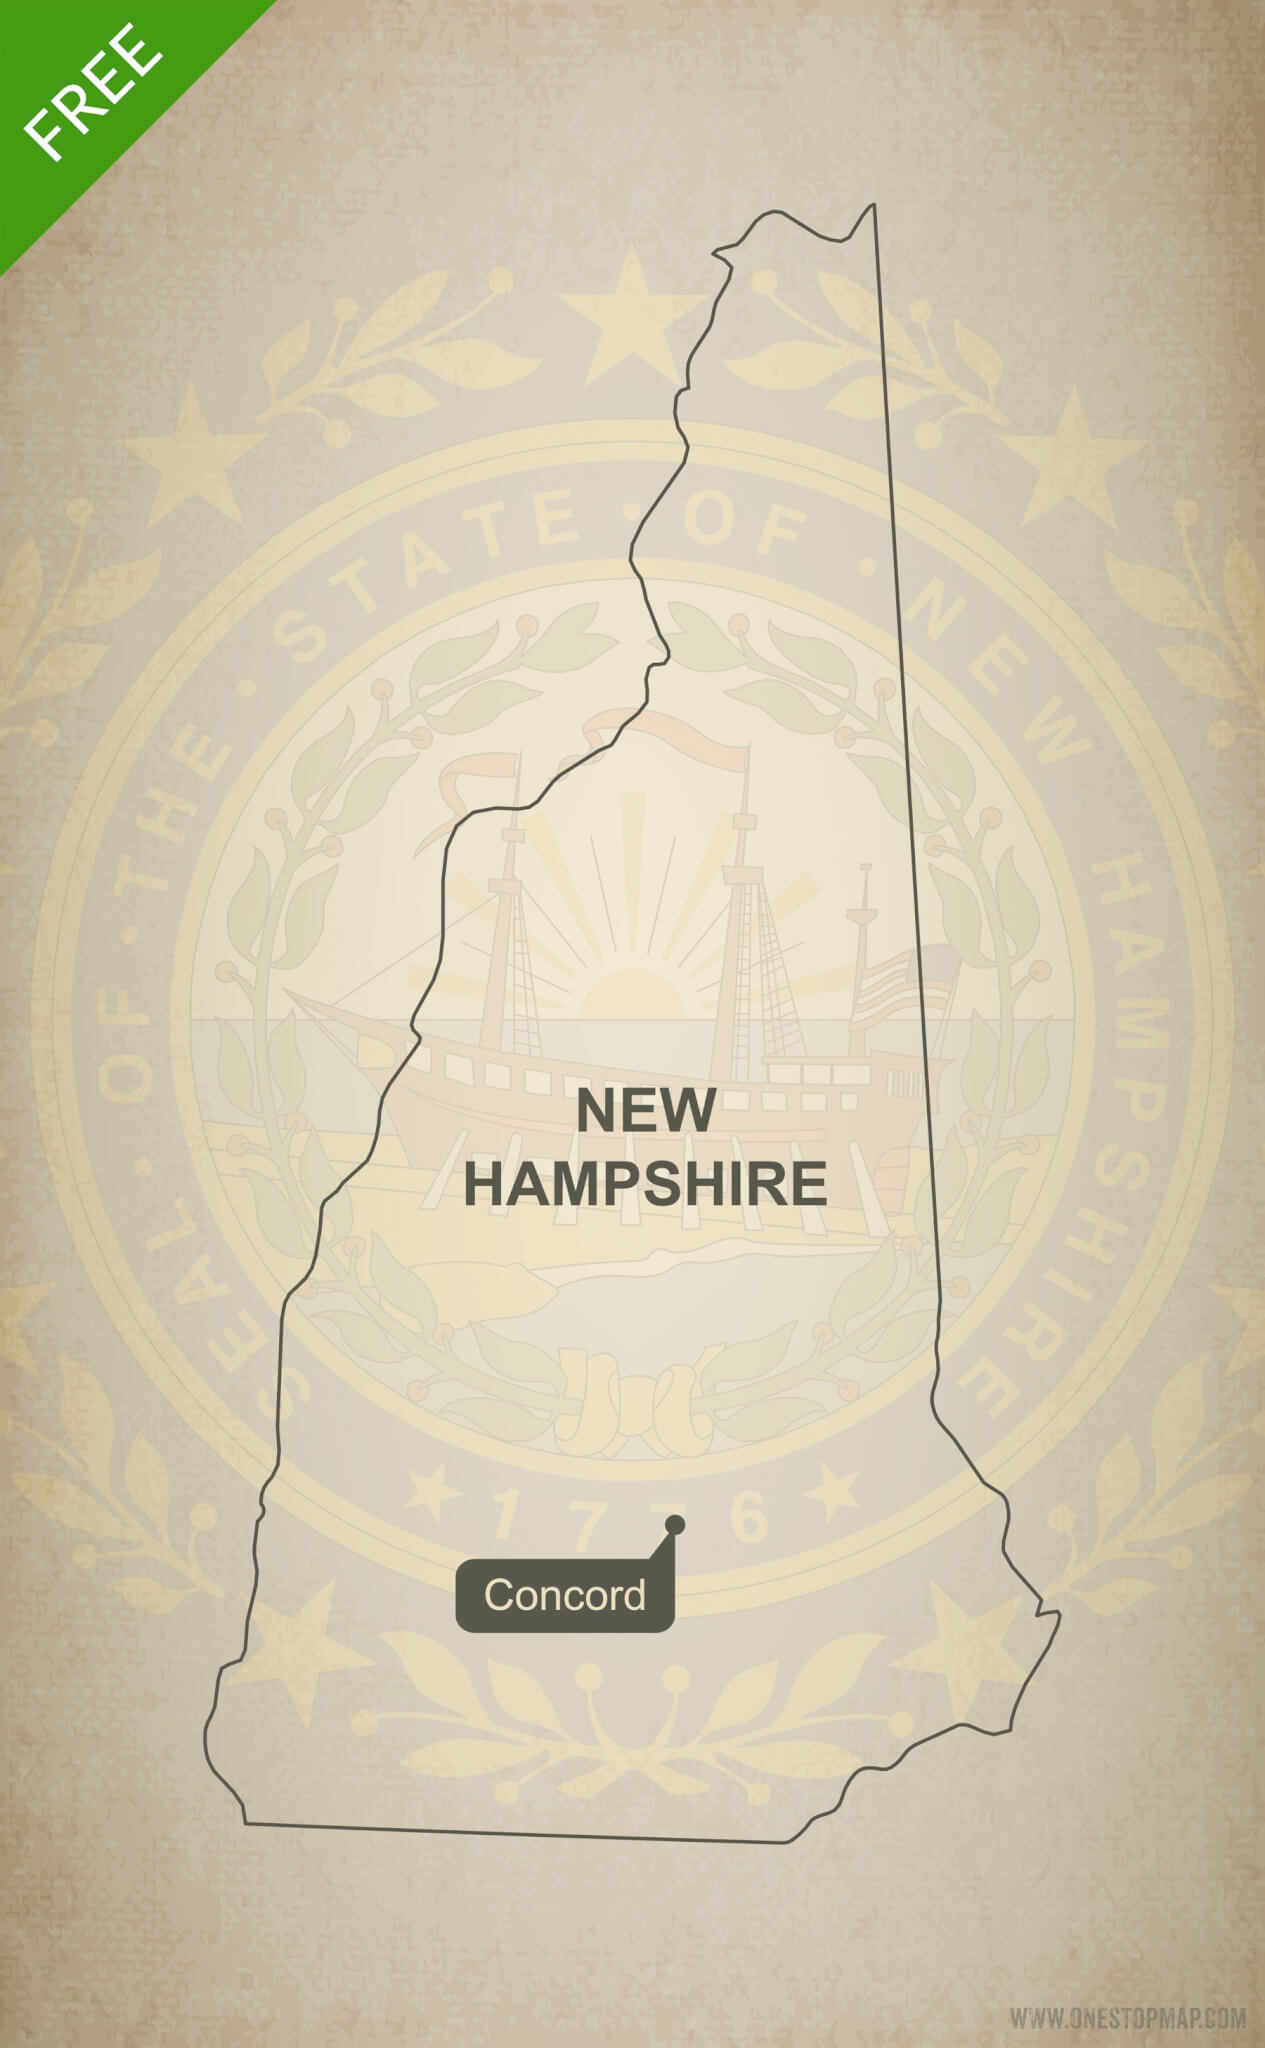 Free Vector Map Of New Hampshire Outline